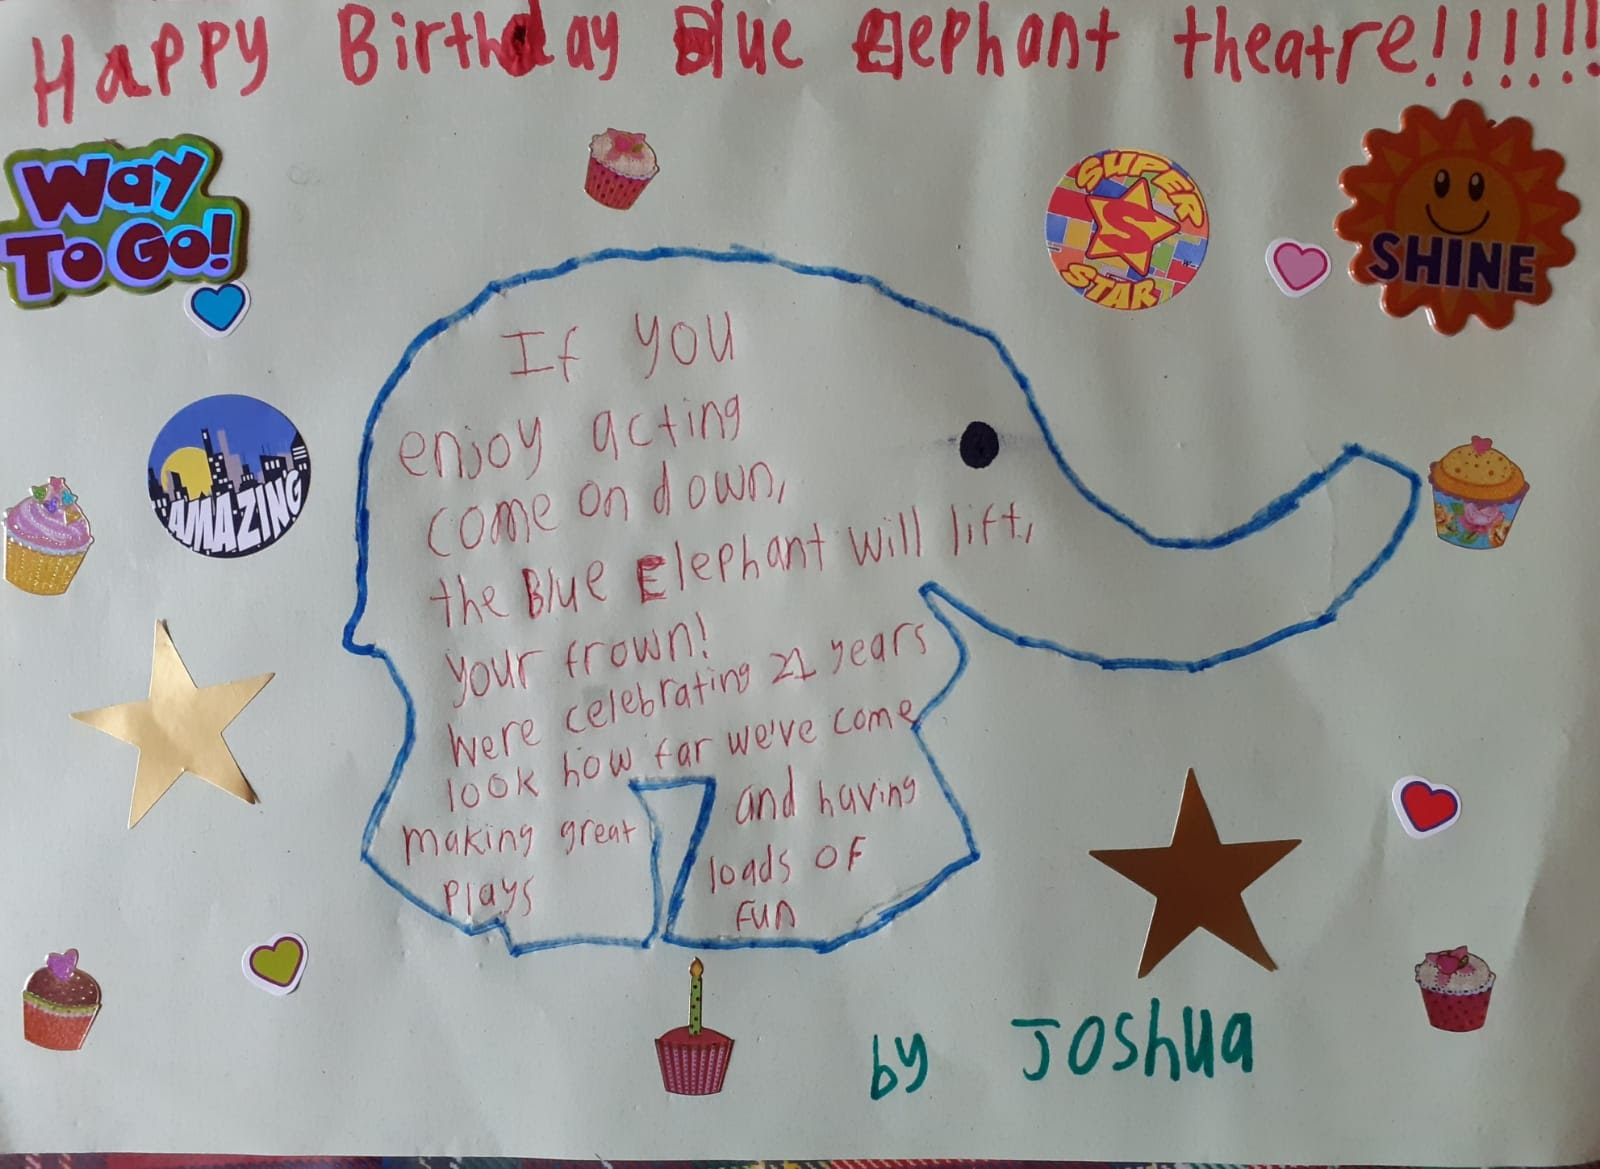 Entry reading Happy Birthday Blue Elephant Theatre!!! Beneath is an outline of en elephant, with a poem inside: If you enjoy acting come on down, The Blue Elephant will lift your frown! We're celebrating 21 years, look how far we've come, making great plays and having loads of fun